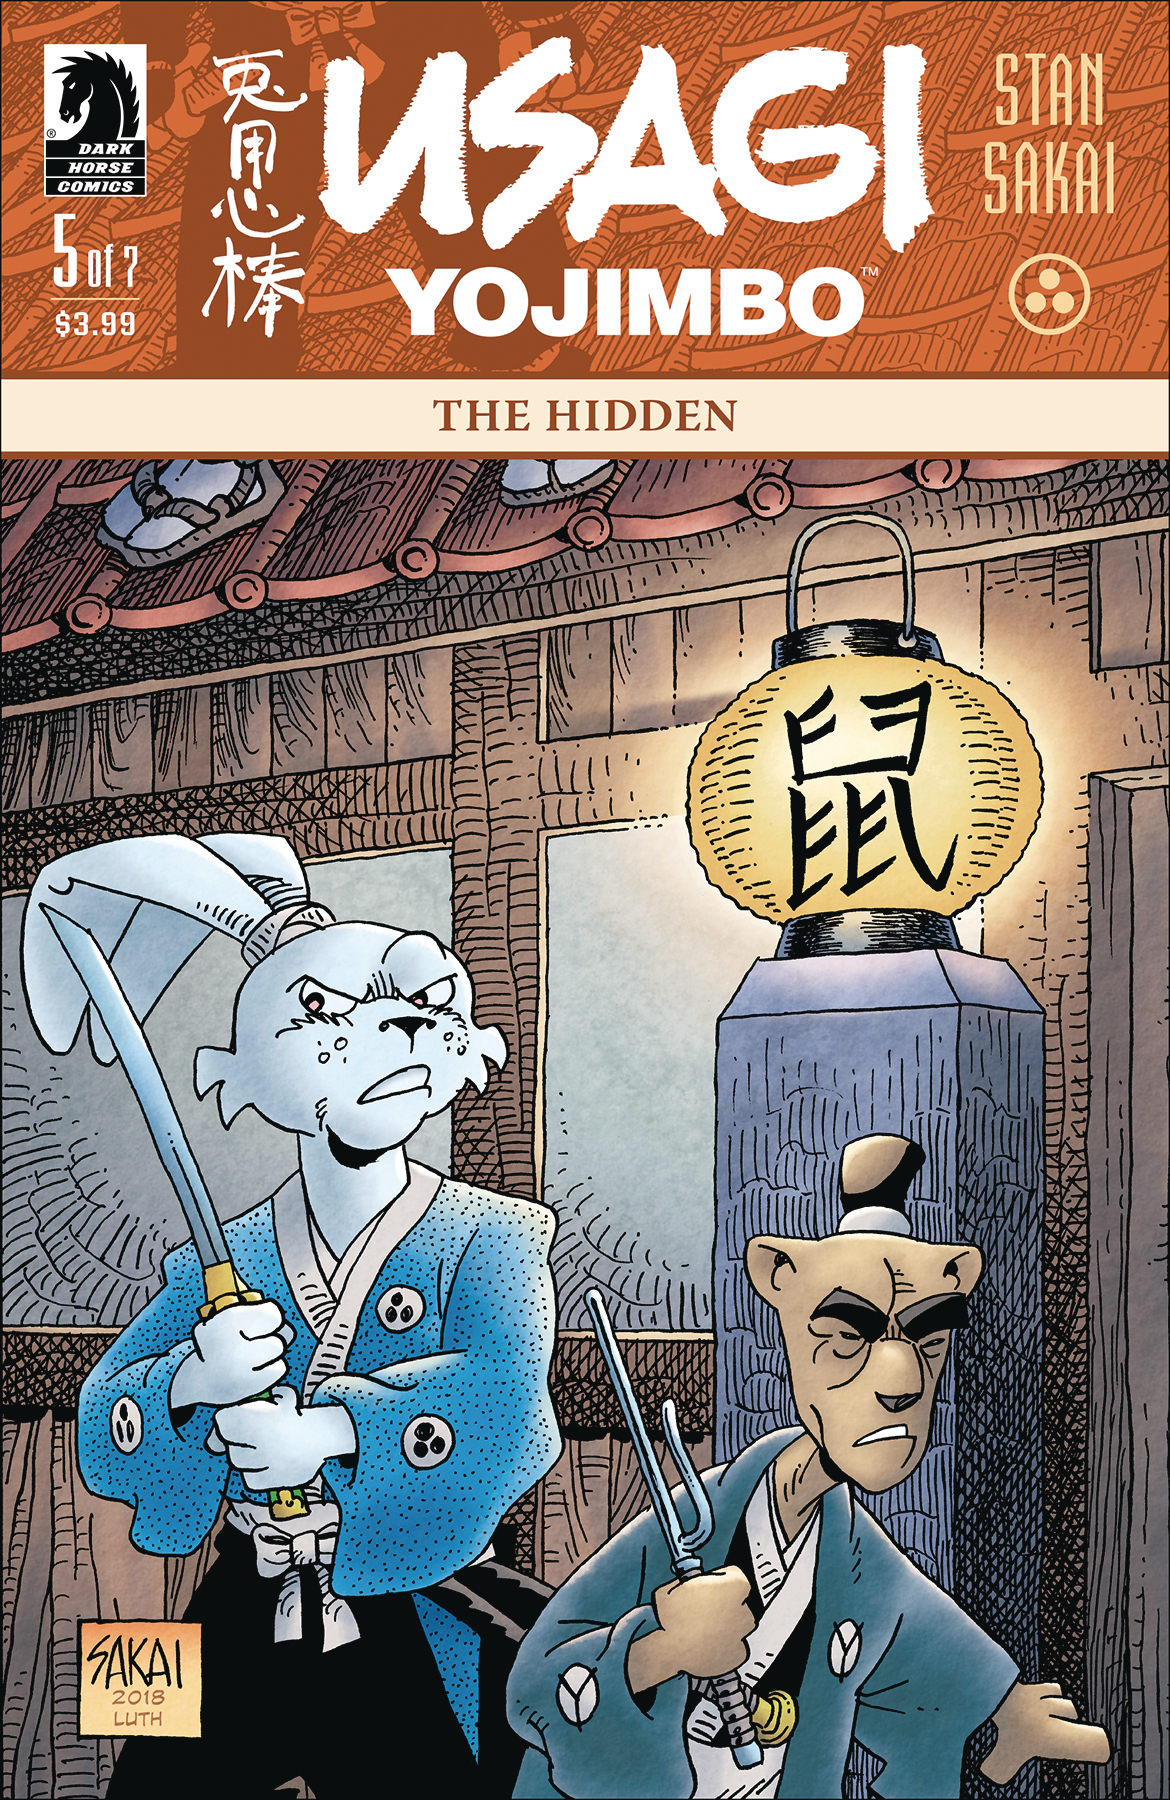 USAGI YOJIMBO #5 (OF 7) THE HIDDEN